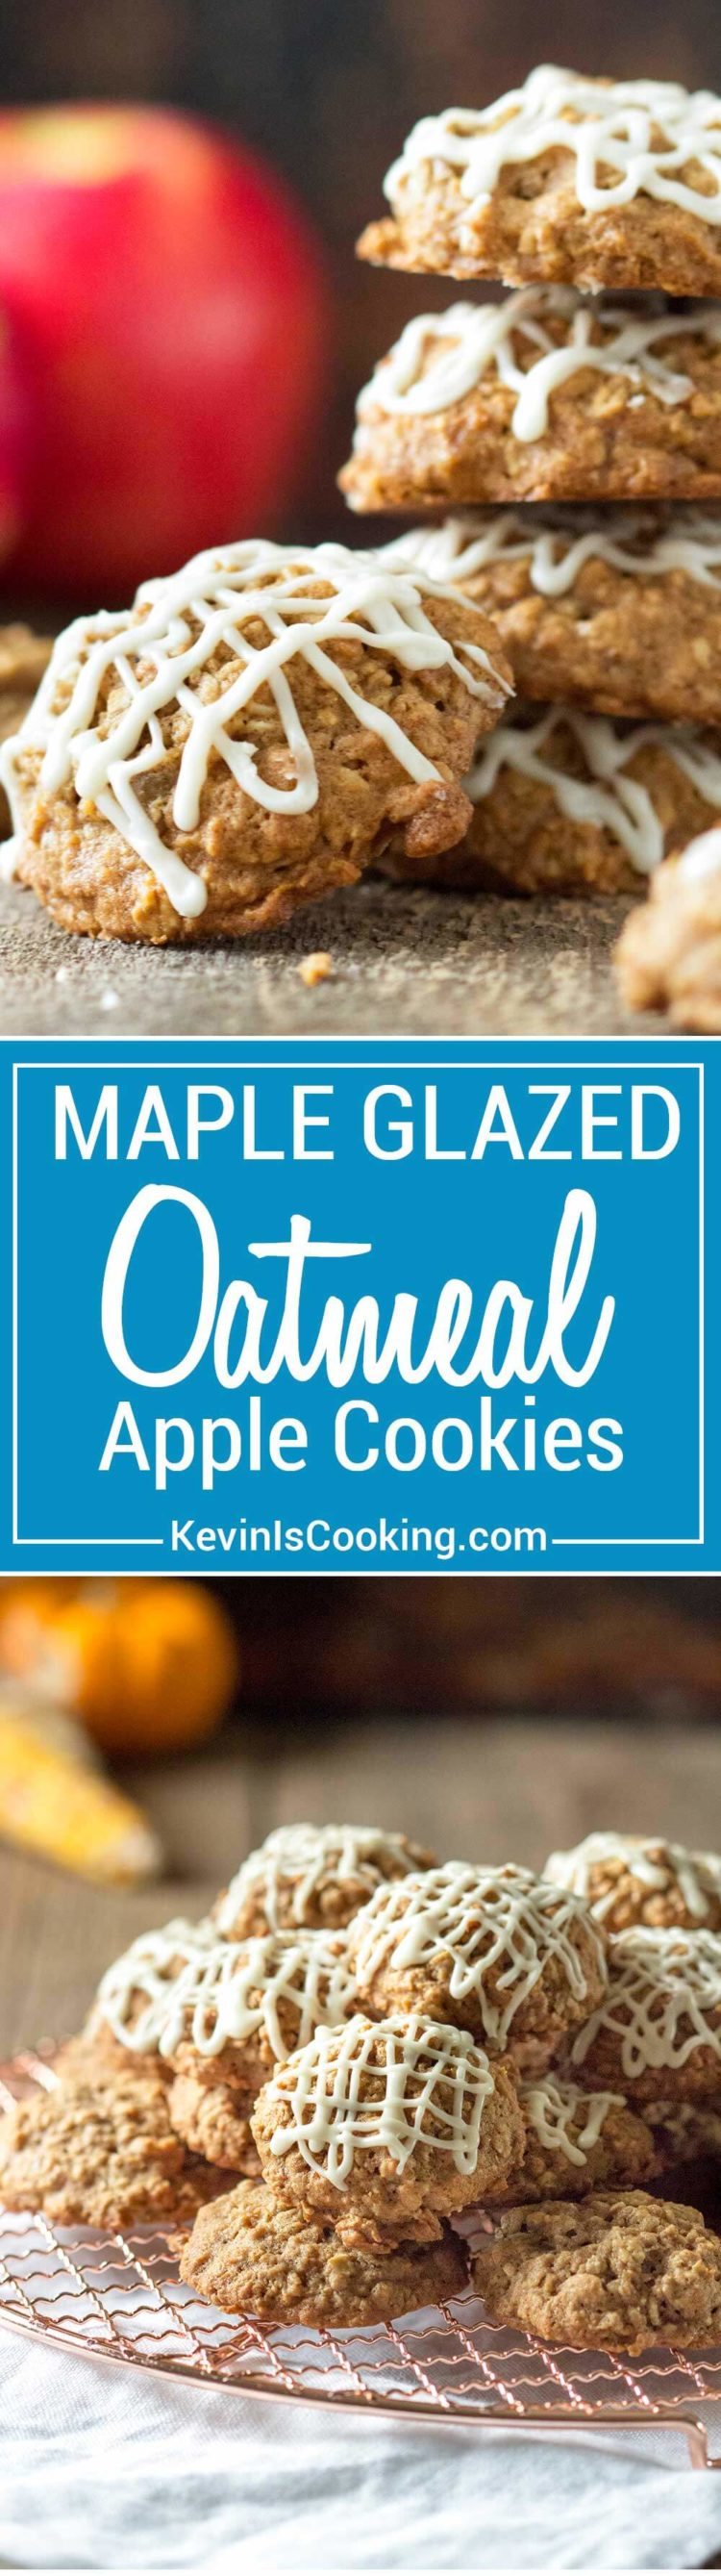 These oatmeal cookies are packed with shredded apples, warm spices and topped with a simple maple glaze. Perfect little bites and the cookies are so soft, chewy! They go pretty quickly to double the batch!